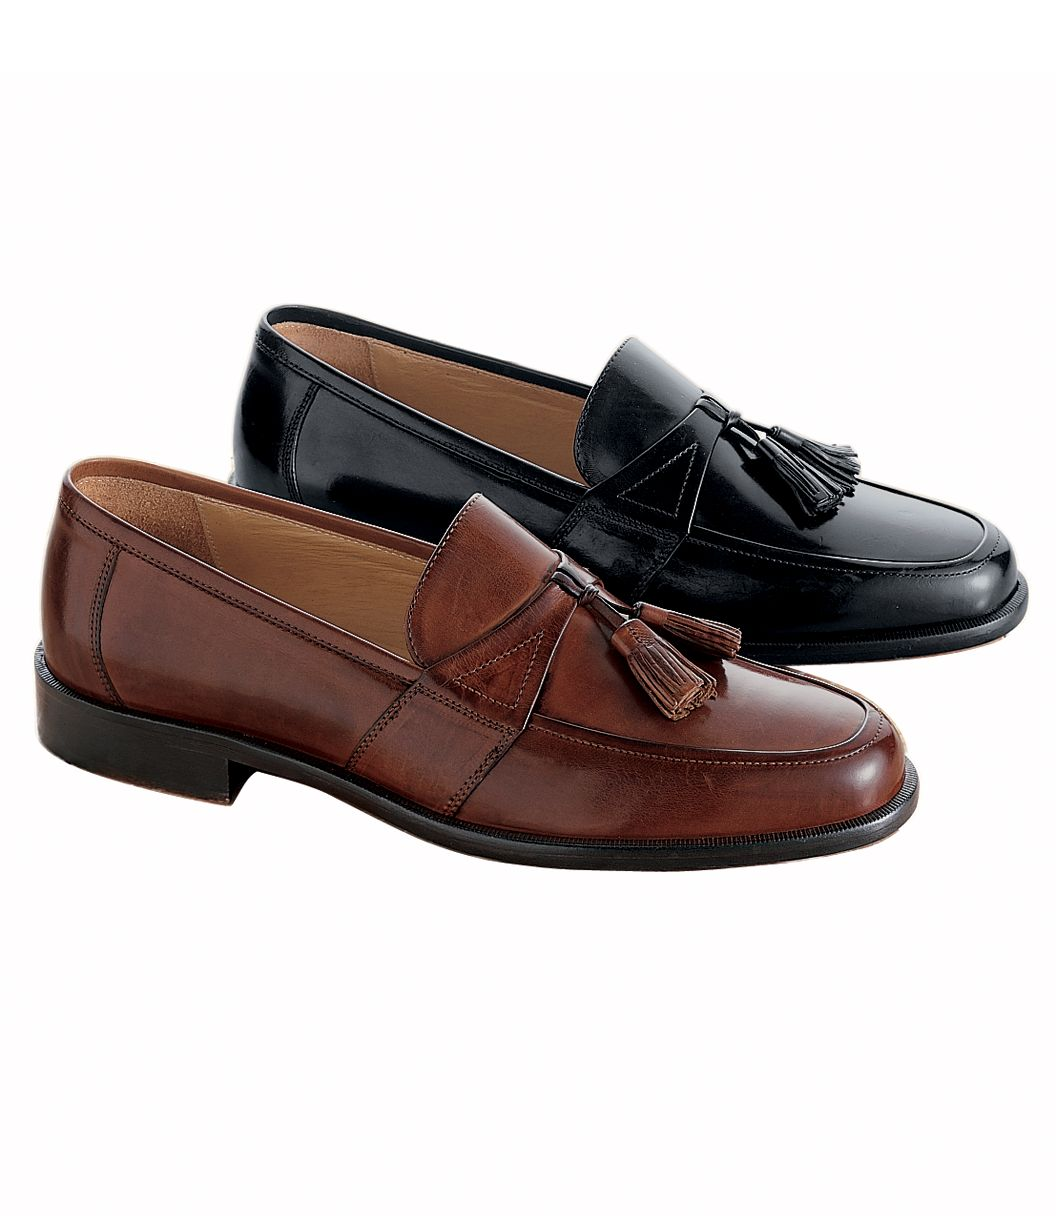 0259b024901 Horner Shoe by Johnston   Murphy in Black CLEARANCE - All Clearance ...